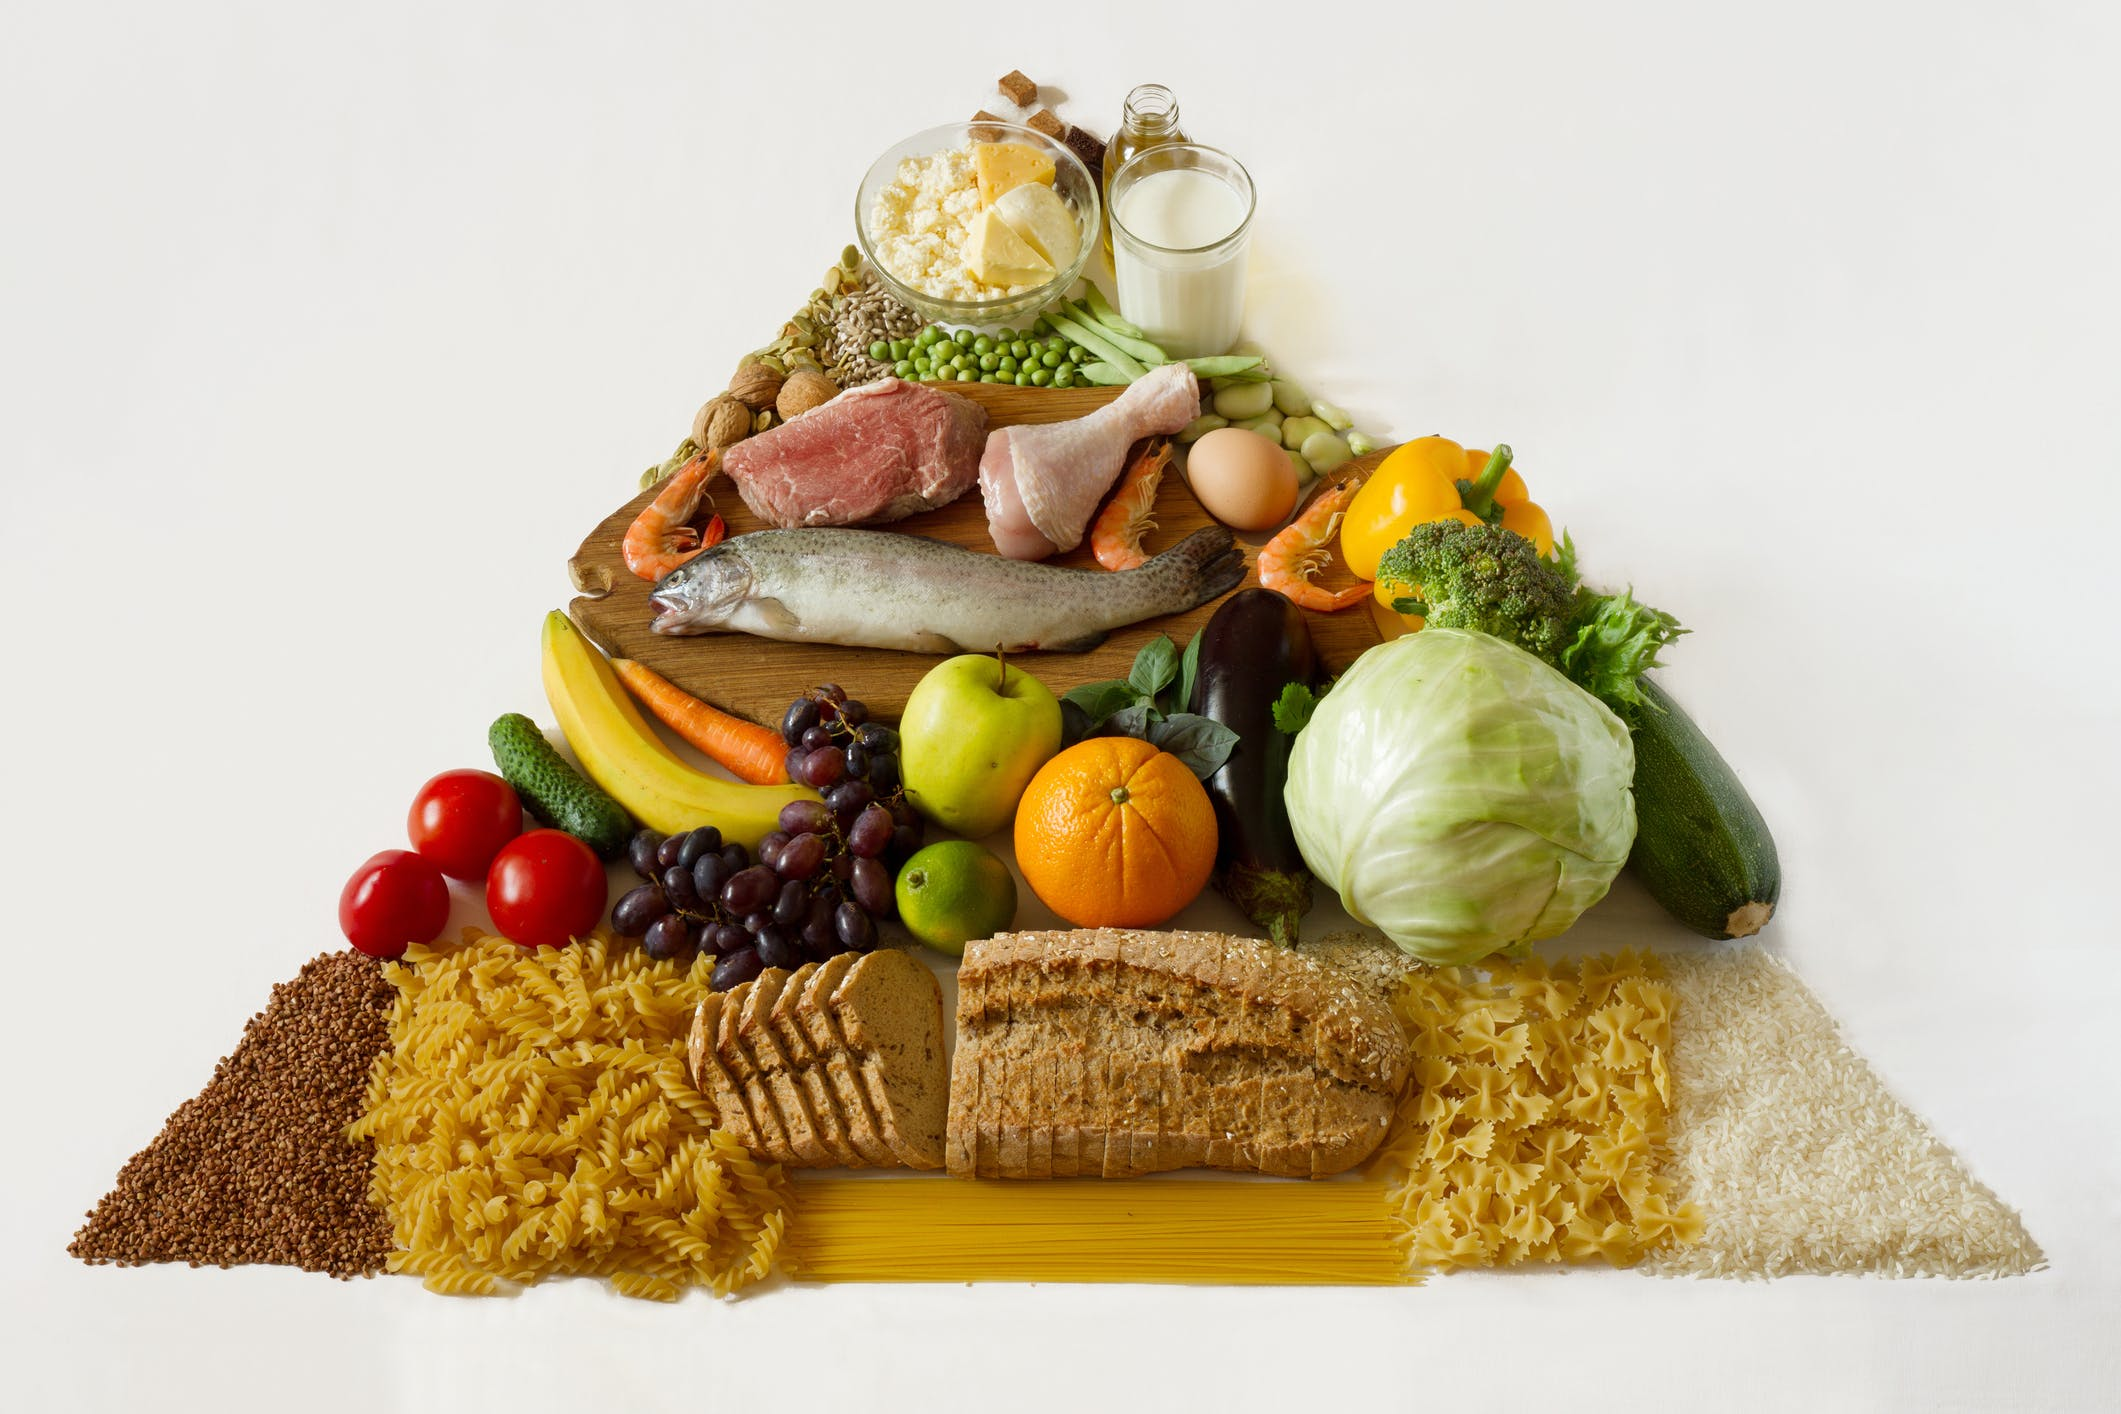 The current health crisis and Canada's food guide